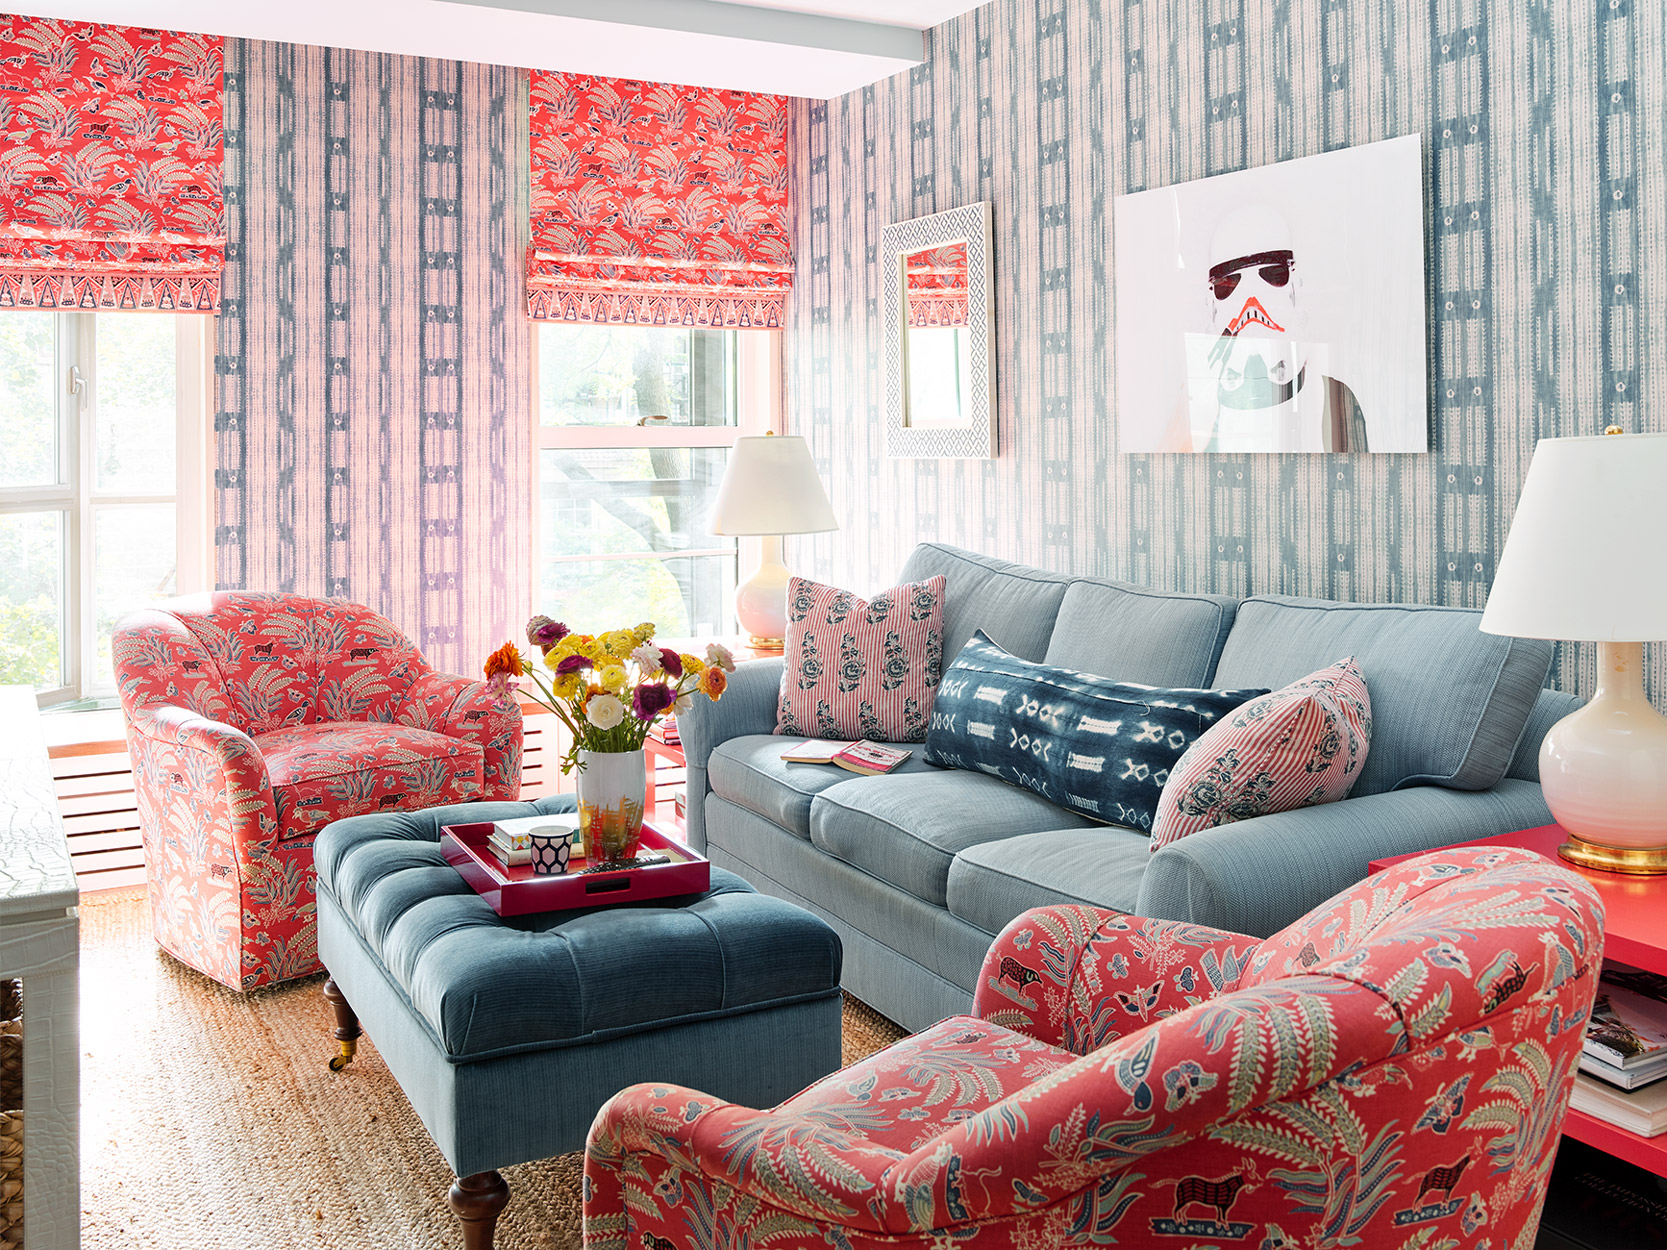 living room with patterned decor